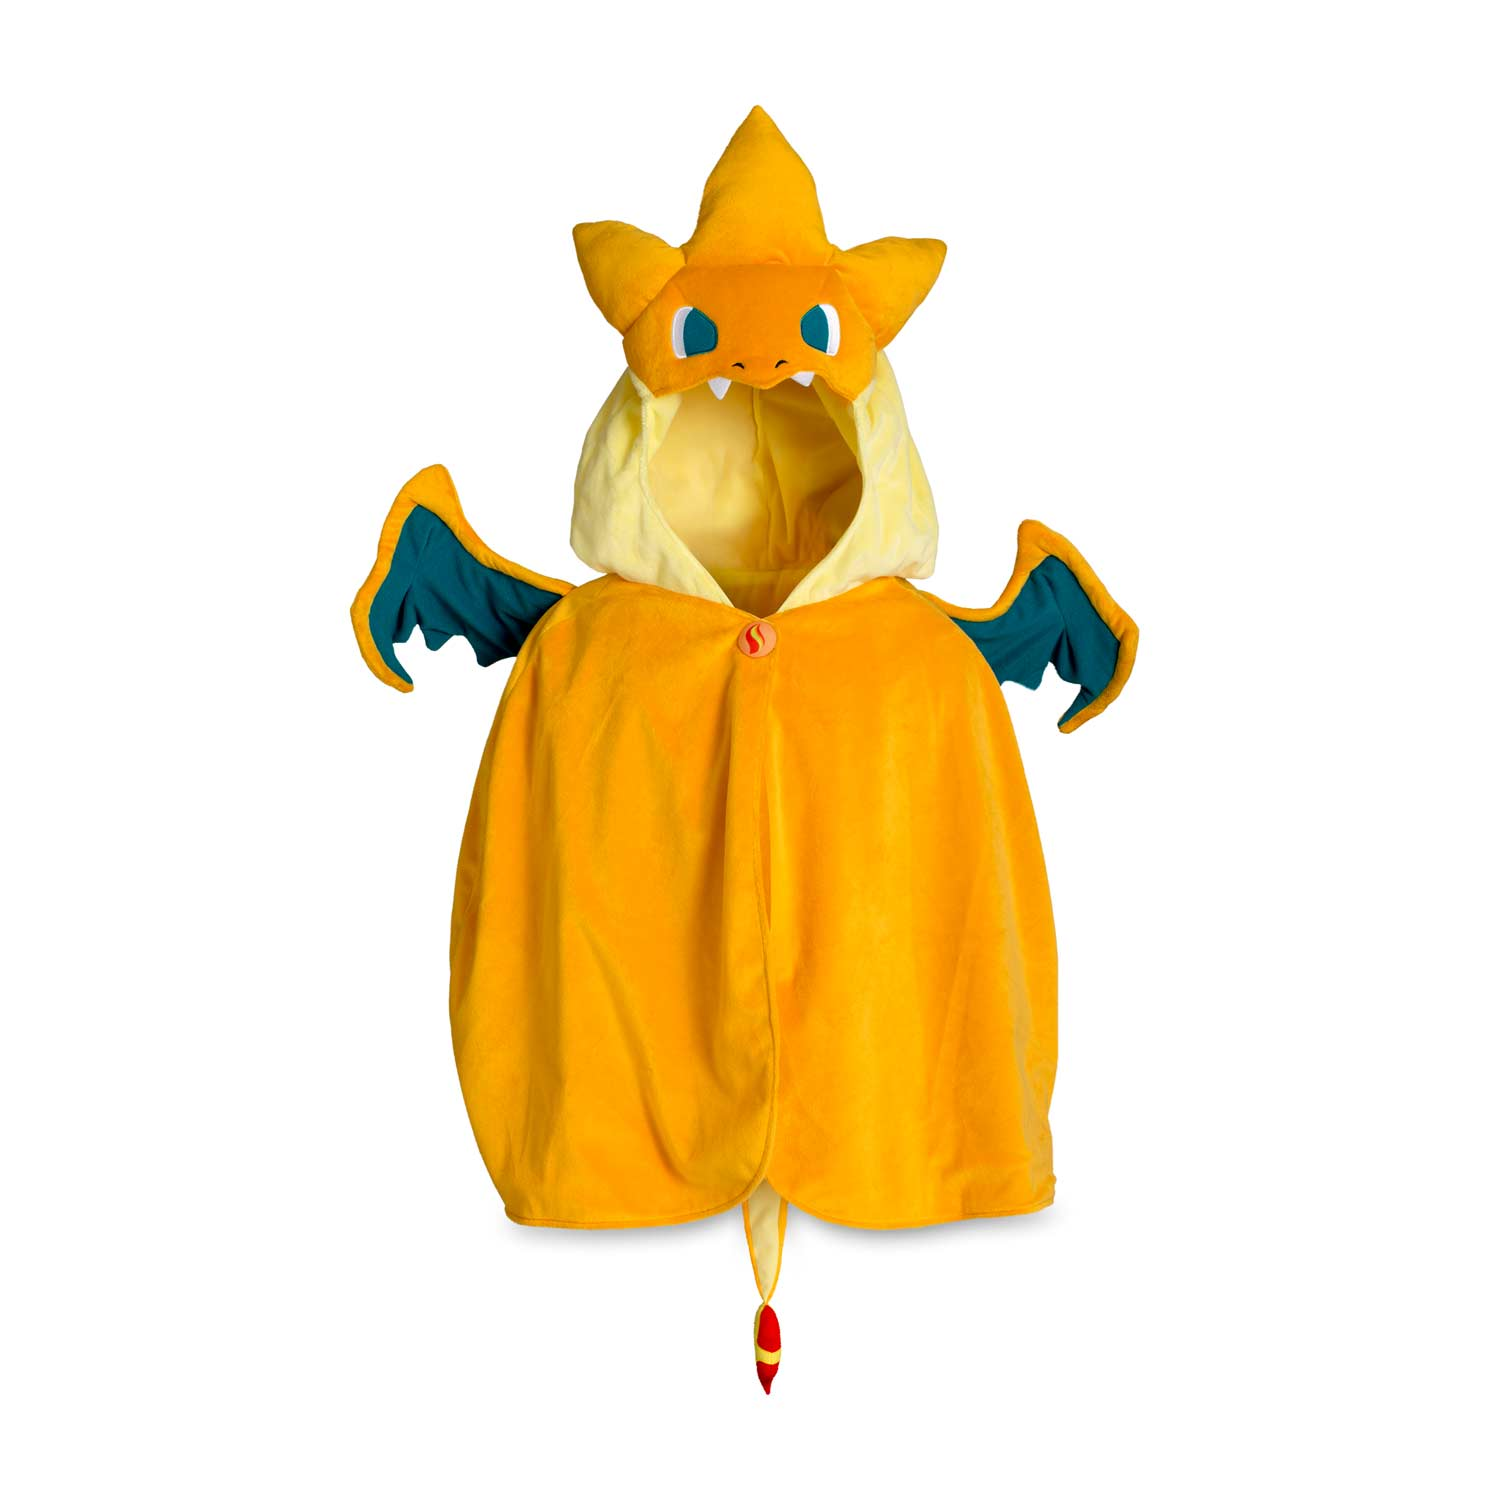 Image for Mega Charizard Y Plush Costume from Pokemon Center  sc 1 st  Pokemon Center & Mega Charizard Y Cape | Orange Pokémon Cape | Pokémon Center Original